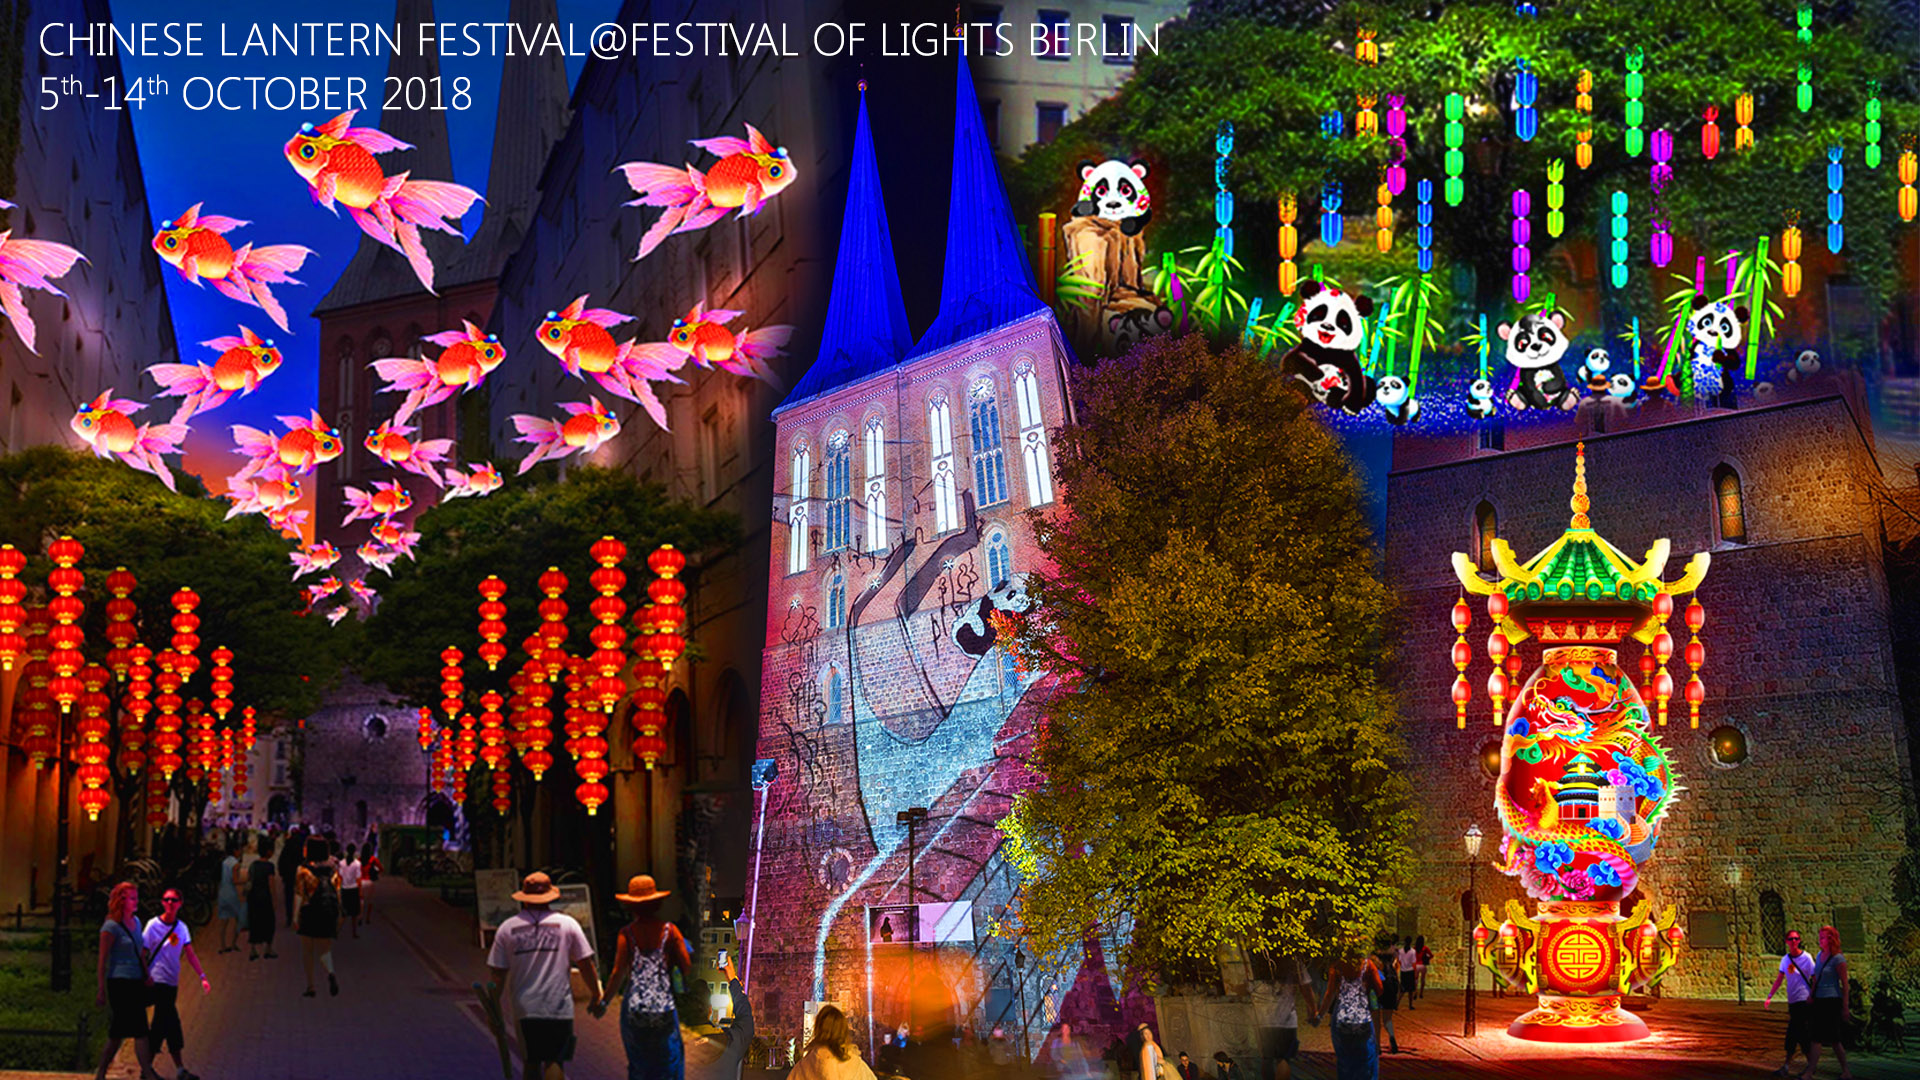 festival of lights berlin 2018 eu china tourism year